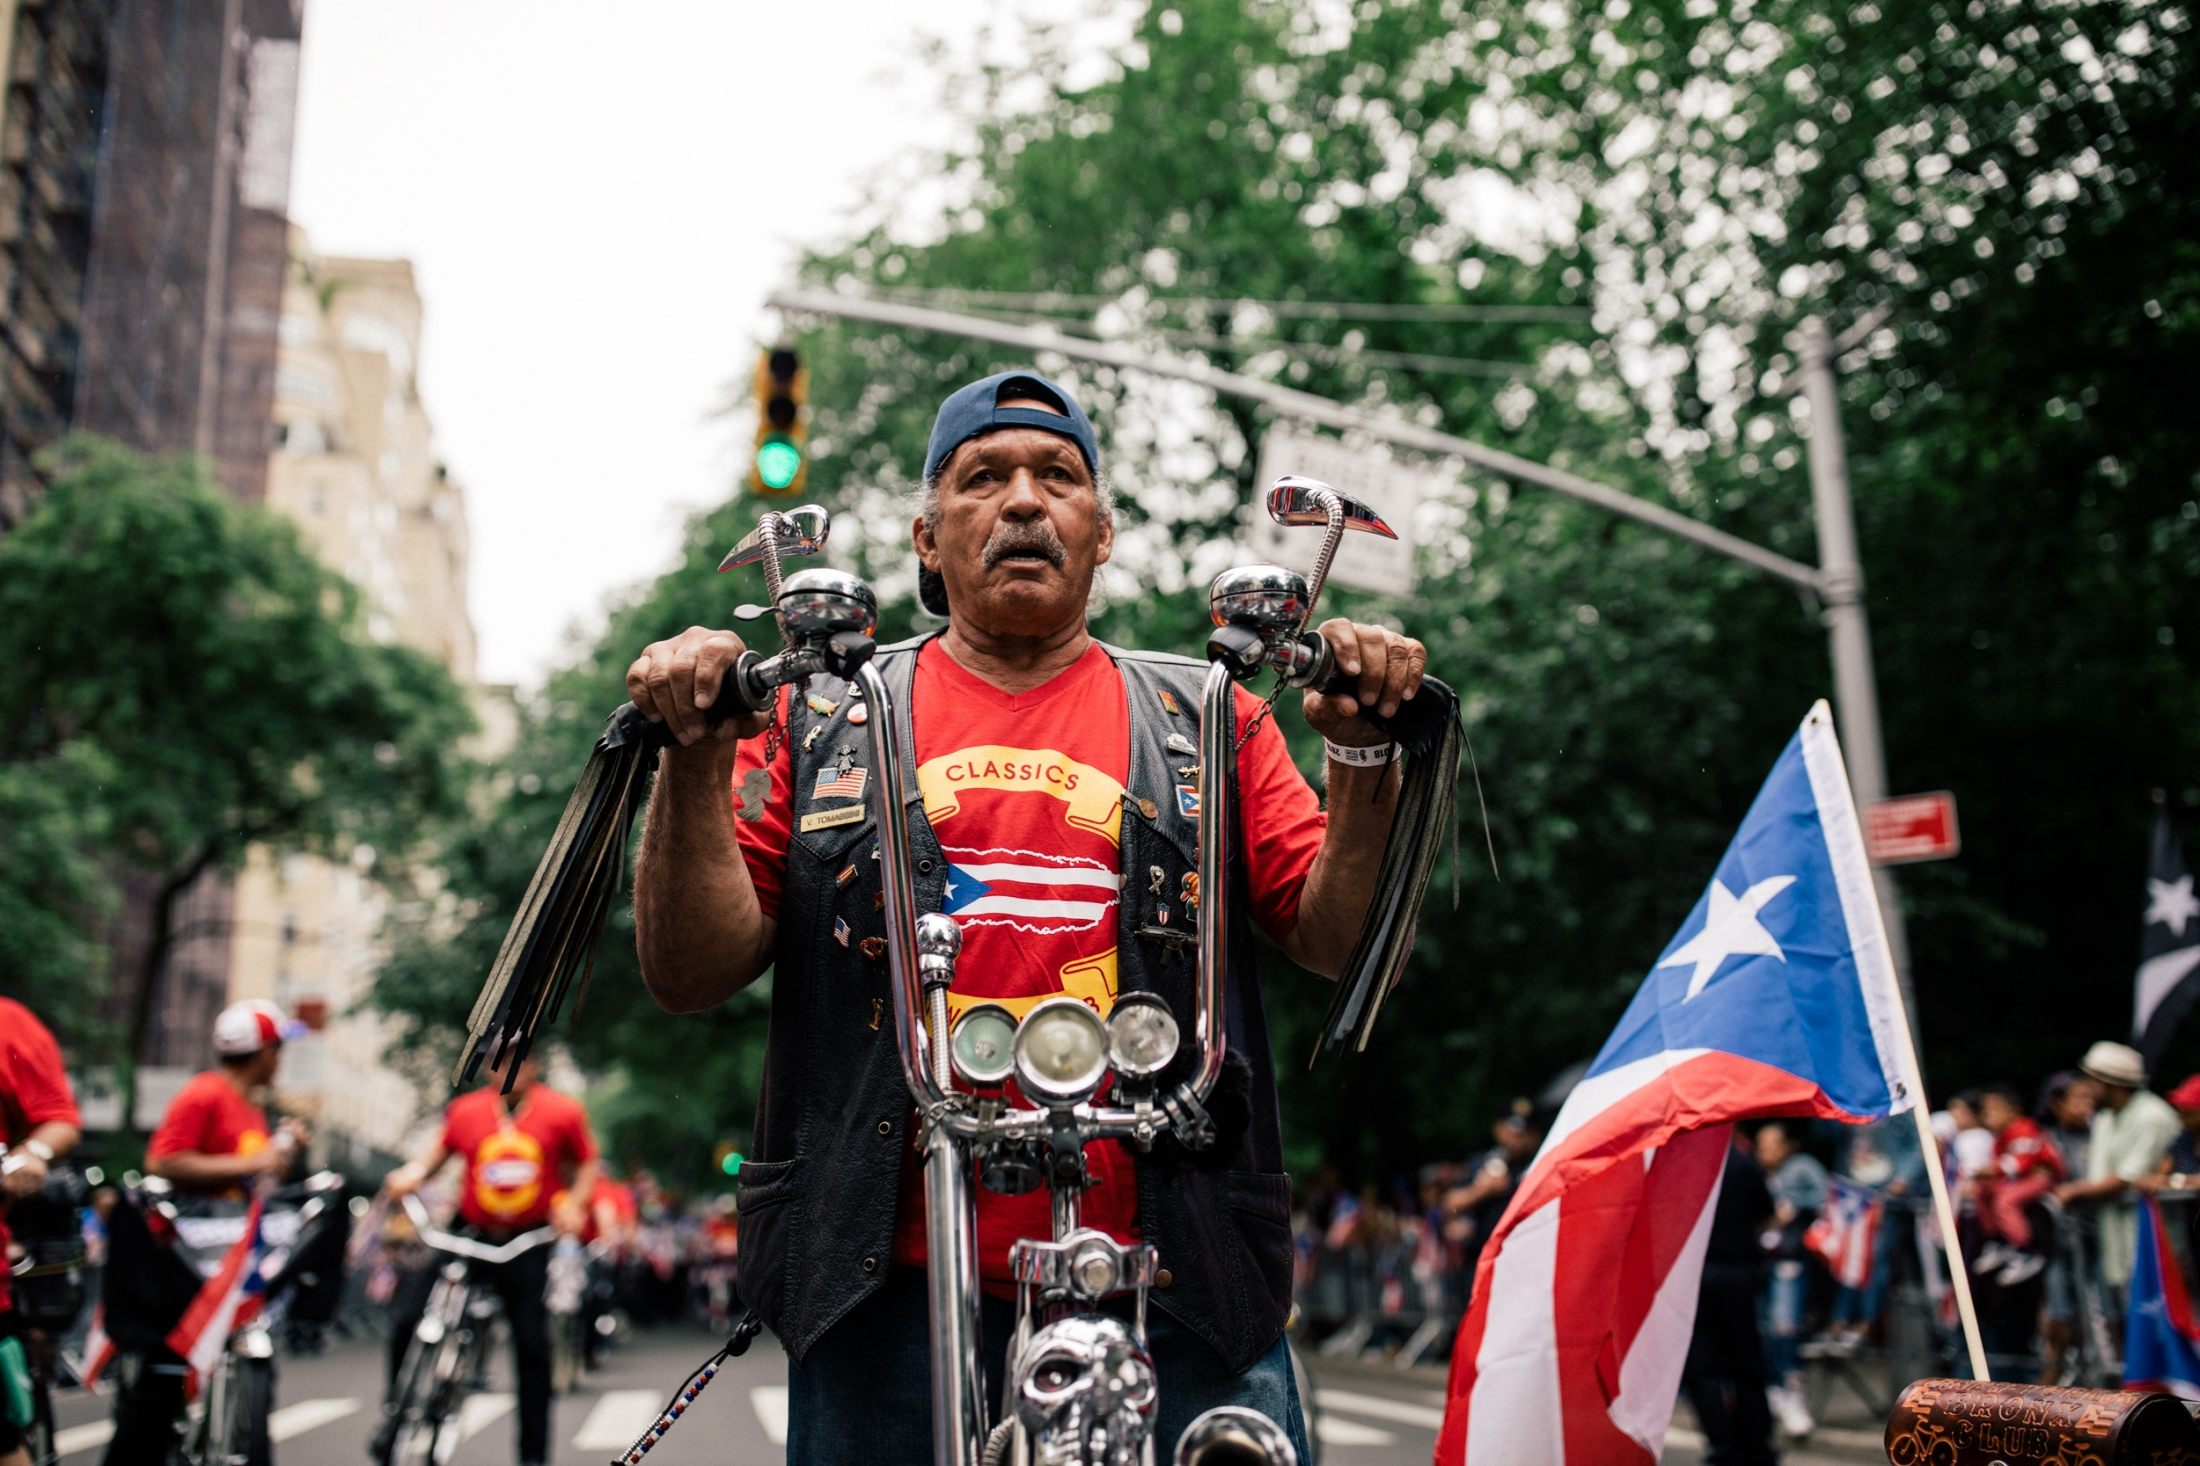 Members of the Bronx Classic Bike Club display their custom bikes at Fifth Avenue and 76th Street.